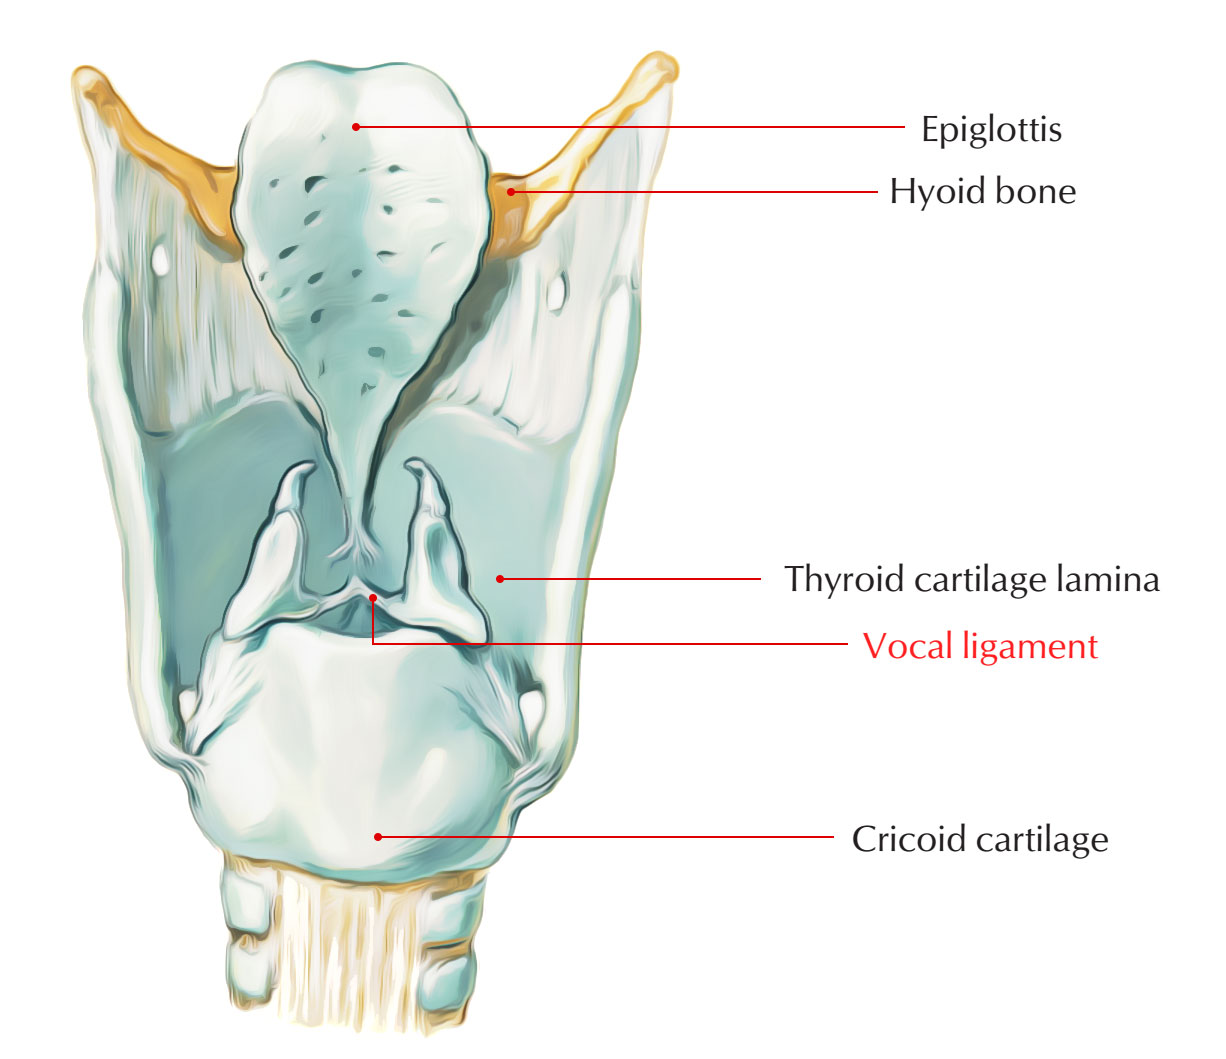 Thyroid Cartilage - Vocal Ligament